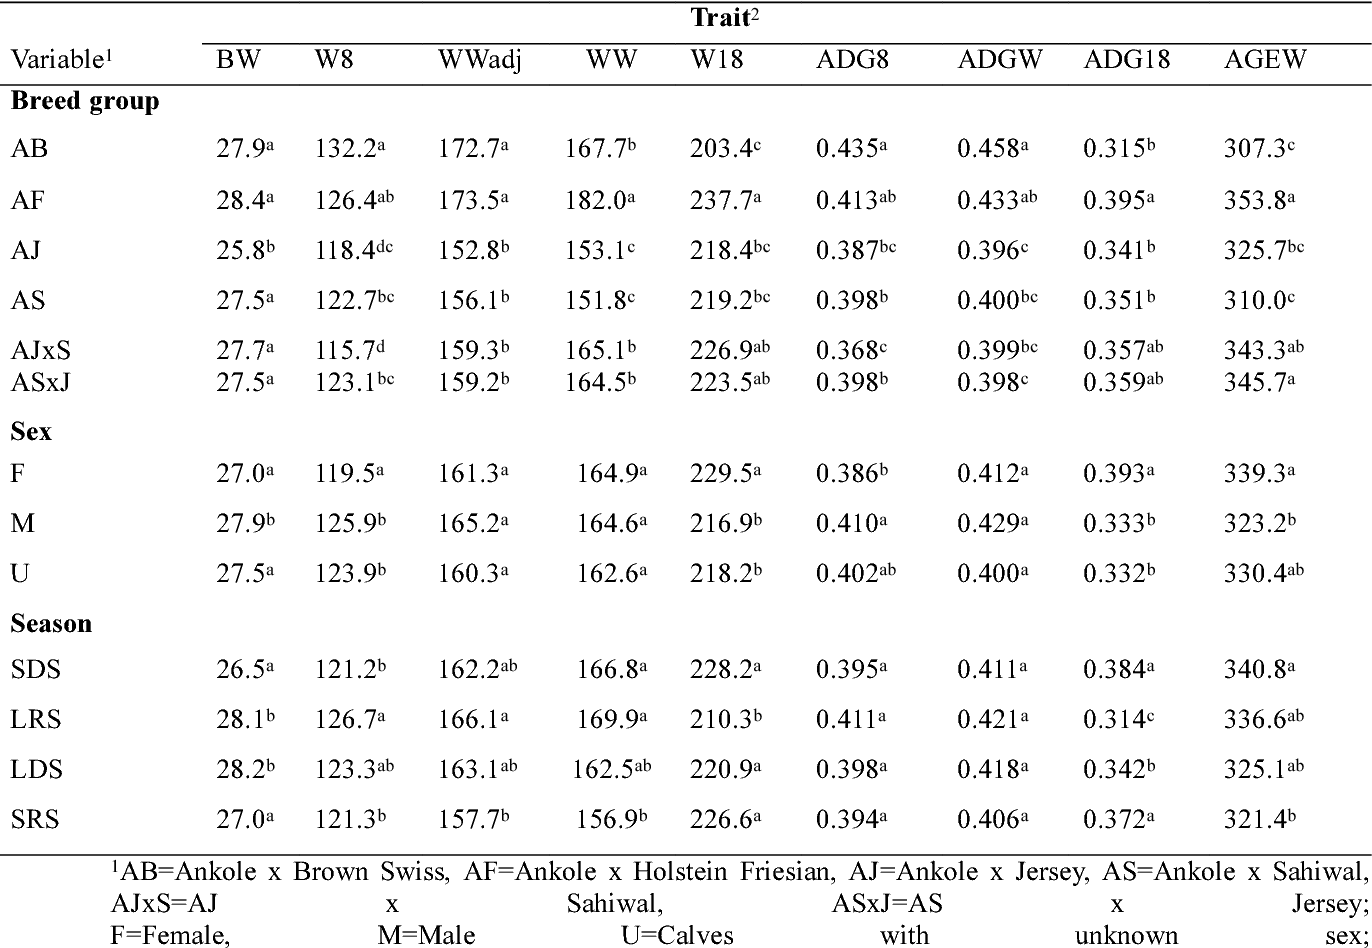 Table IV from Growth traits of crossbreds of Ankole with